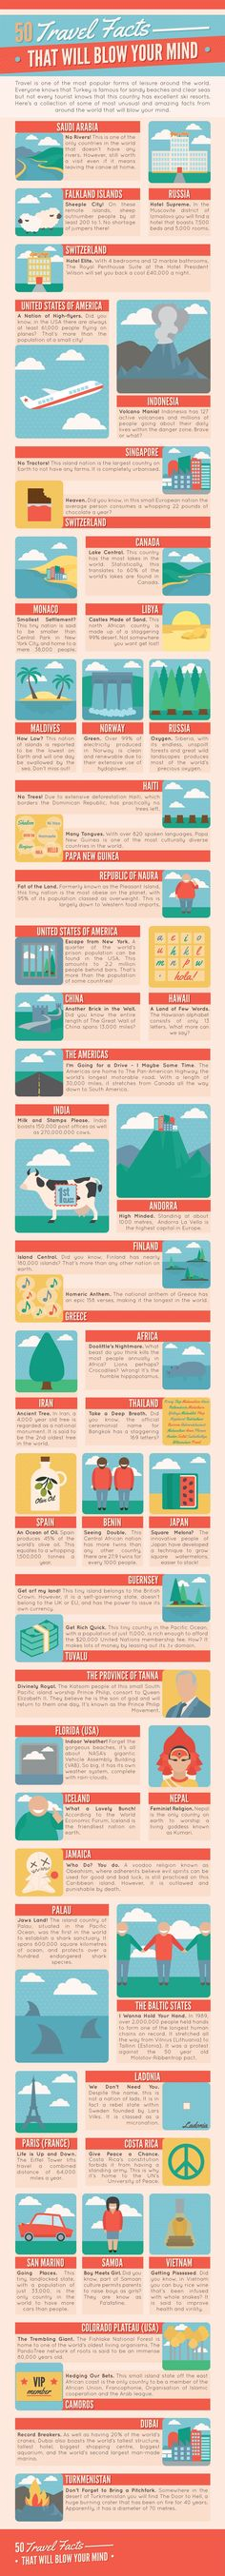 50 Travel Facts That Will Blow Your Mind #infographic #Travel #Facts